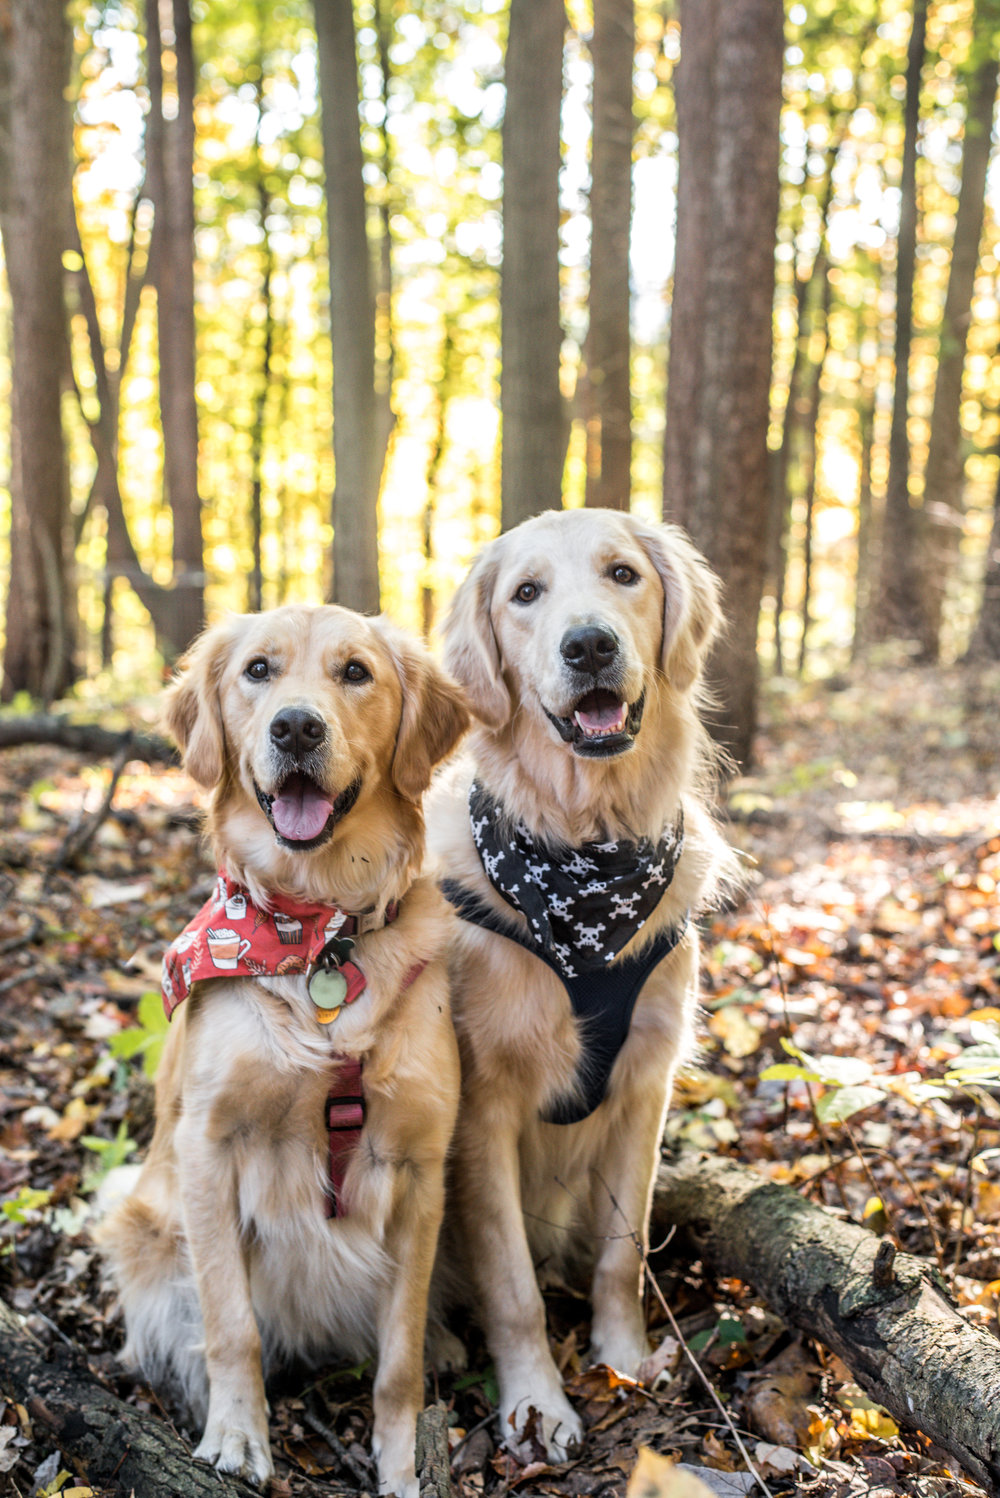 Millie and Murphy, Golden Retrievers